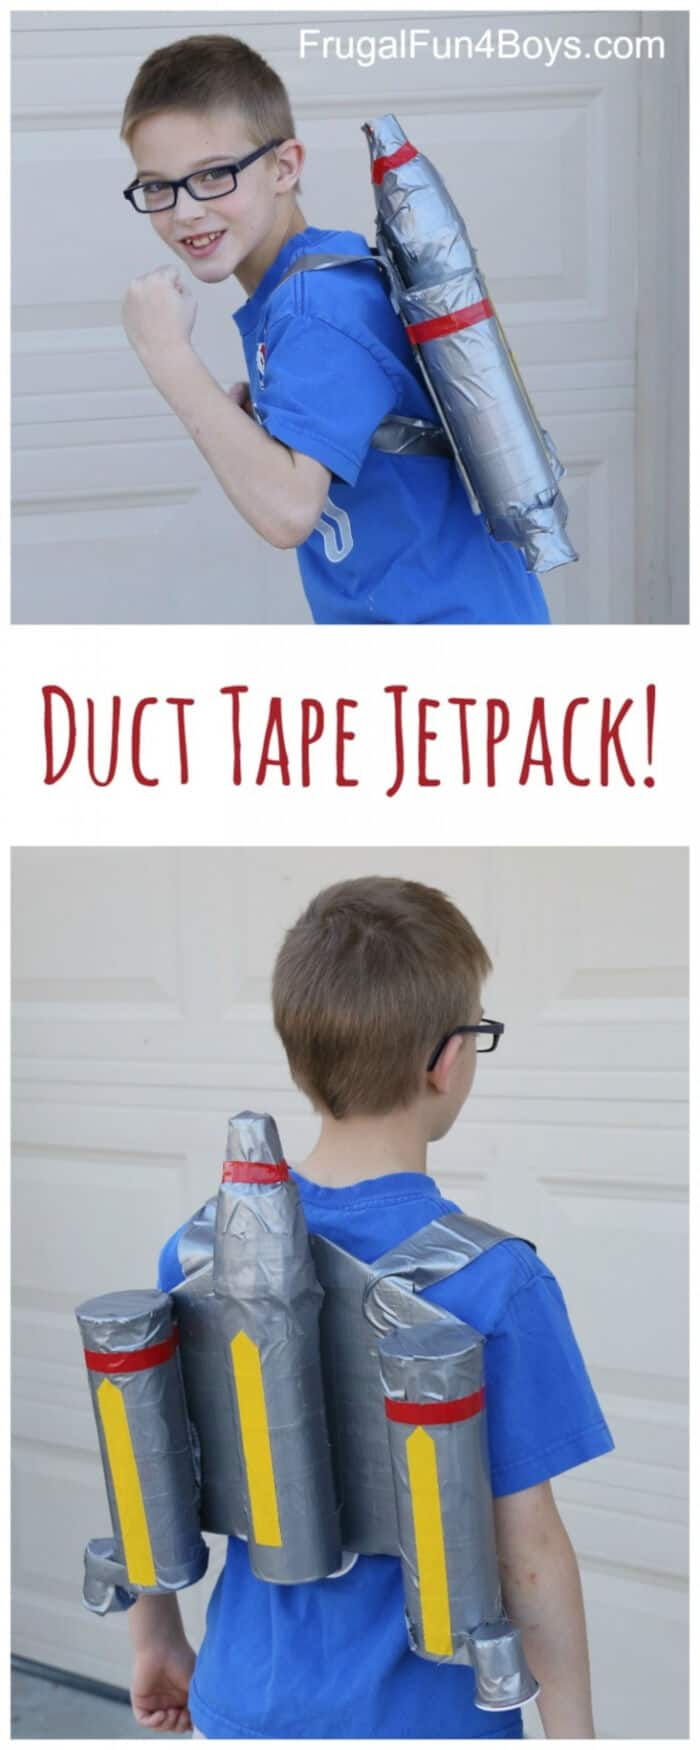 Duct Tape Jetpack by Frugal Fun For Boys